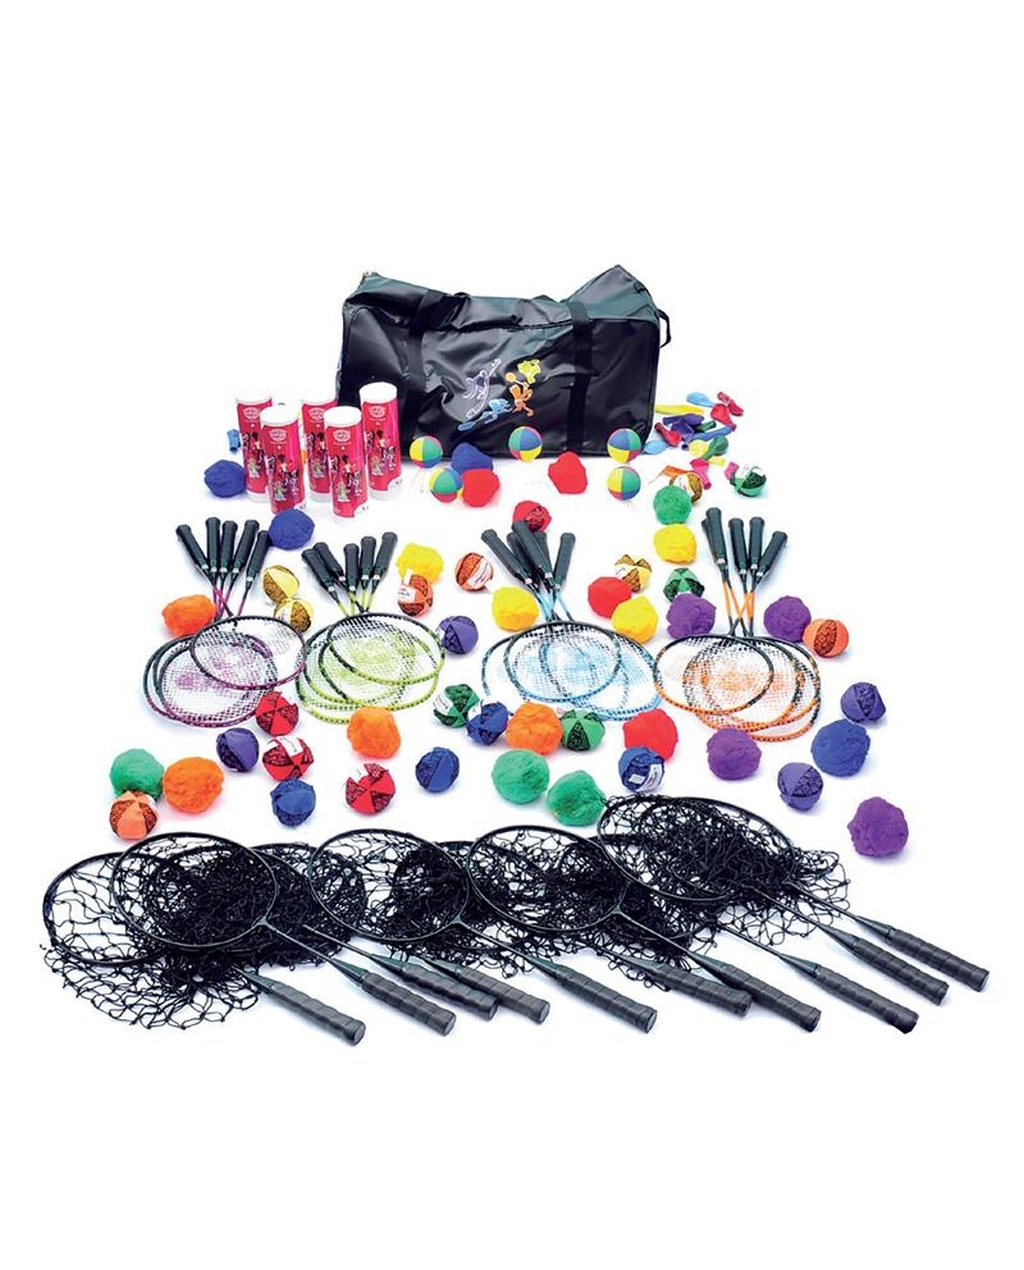 Racket Pack Primary Equipment W/O Accessories